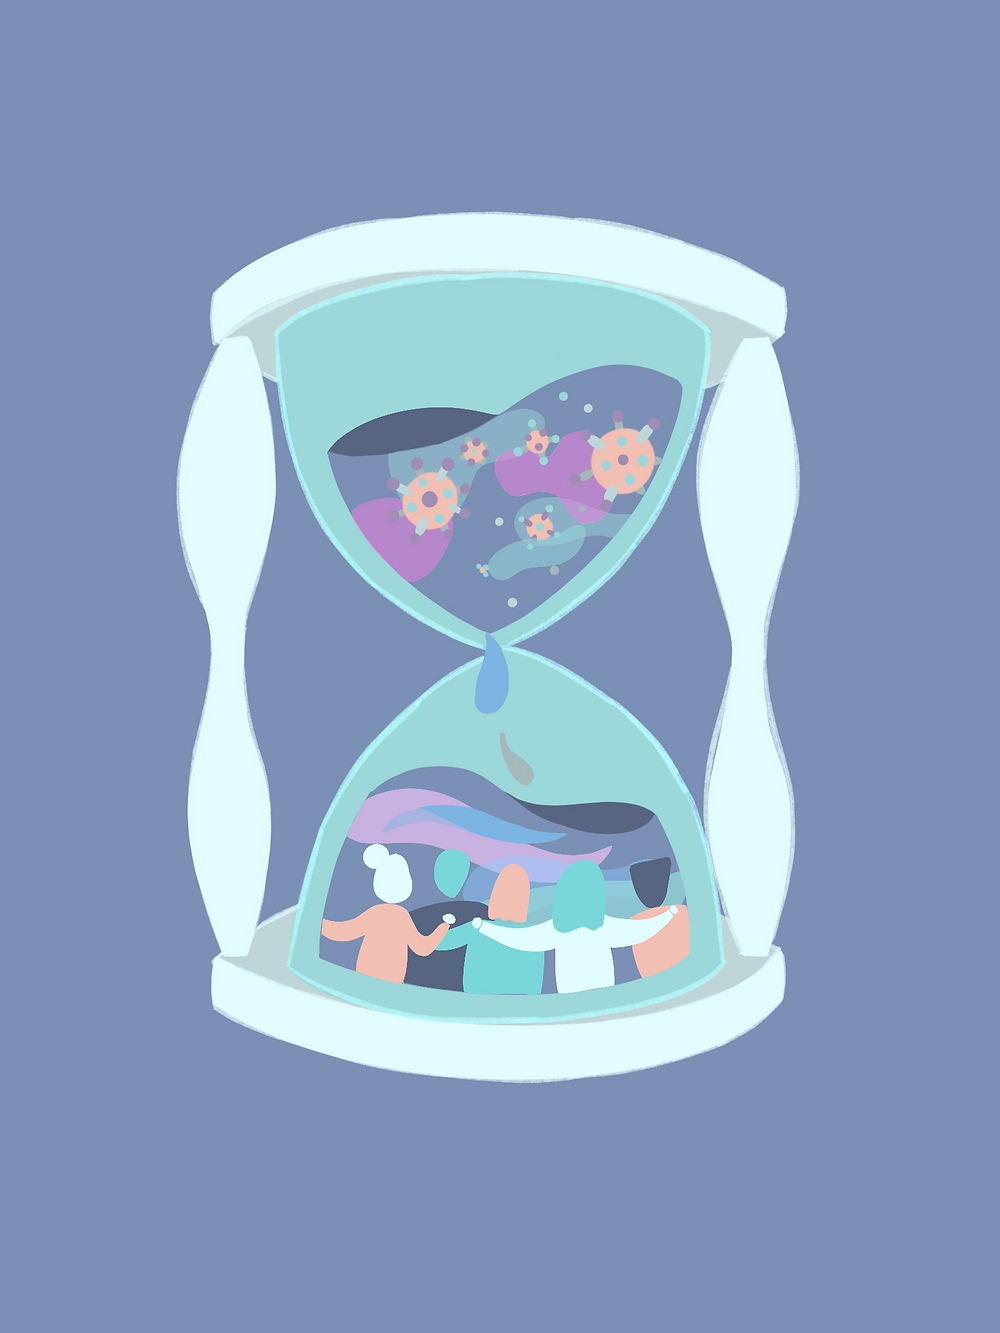 In this hourglass, the sand in the upper half is filled with COVID viruses while the bottom half is filled with happiness and rejoice.